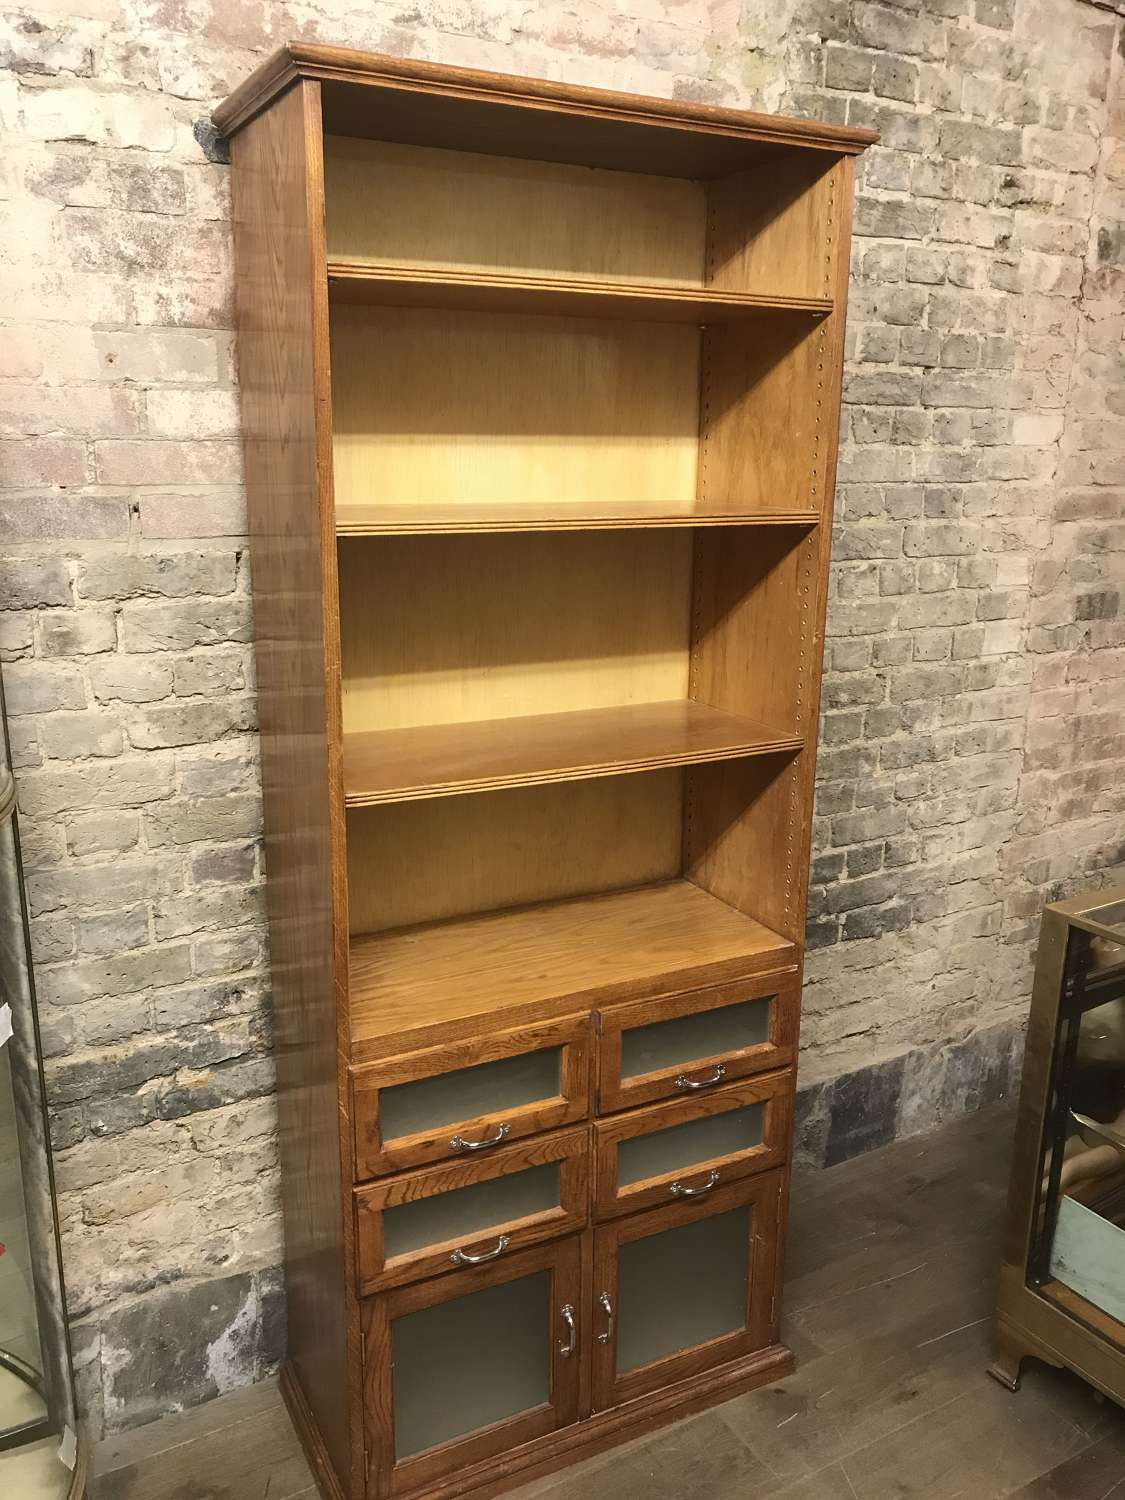 Haberdashery Drawers with Shelves